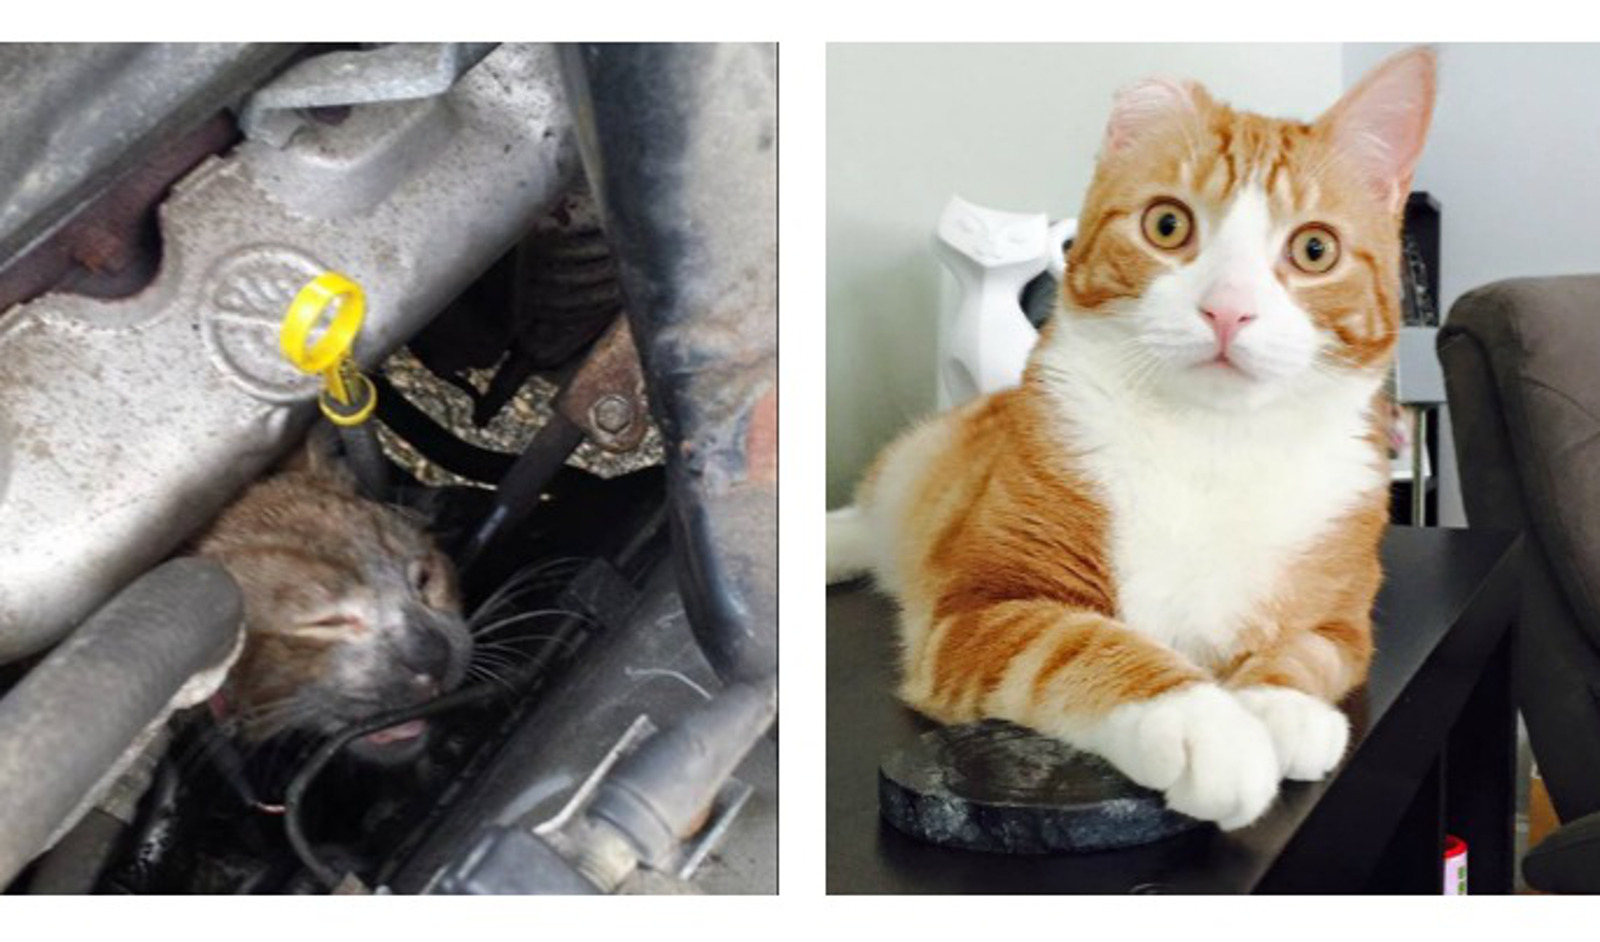 10 Before-And-After Photos of Rescued Animals That Will Restore Your Faith in Humanity